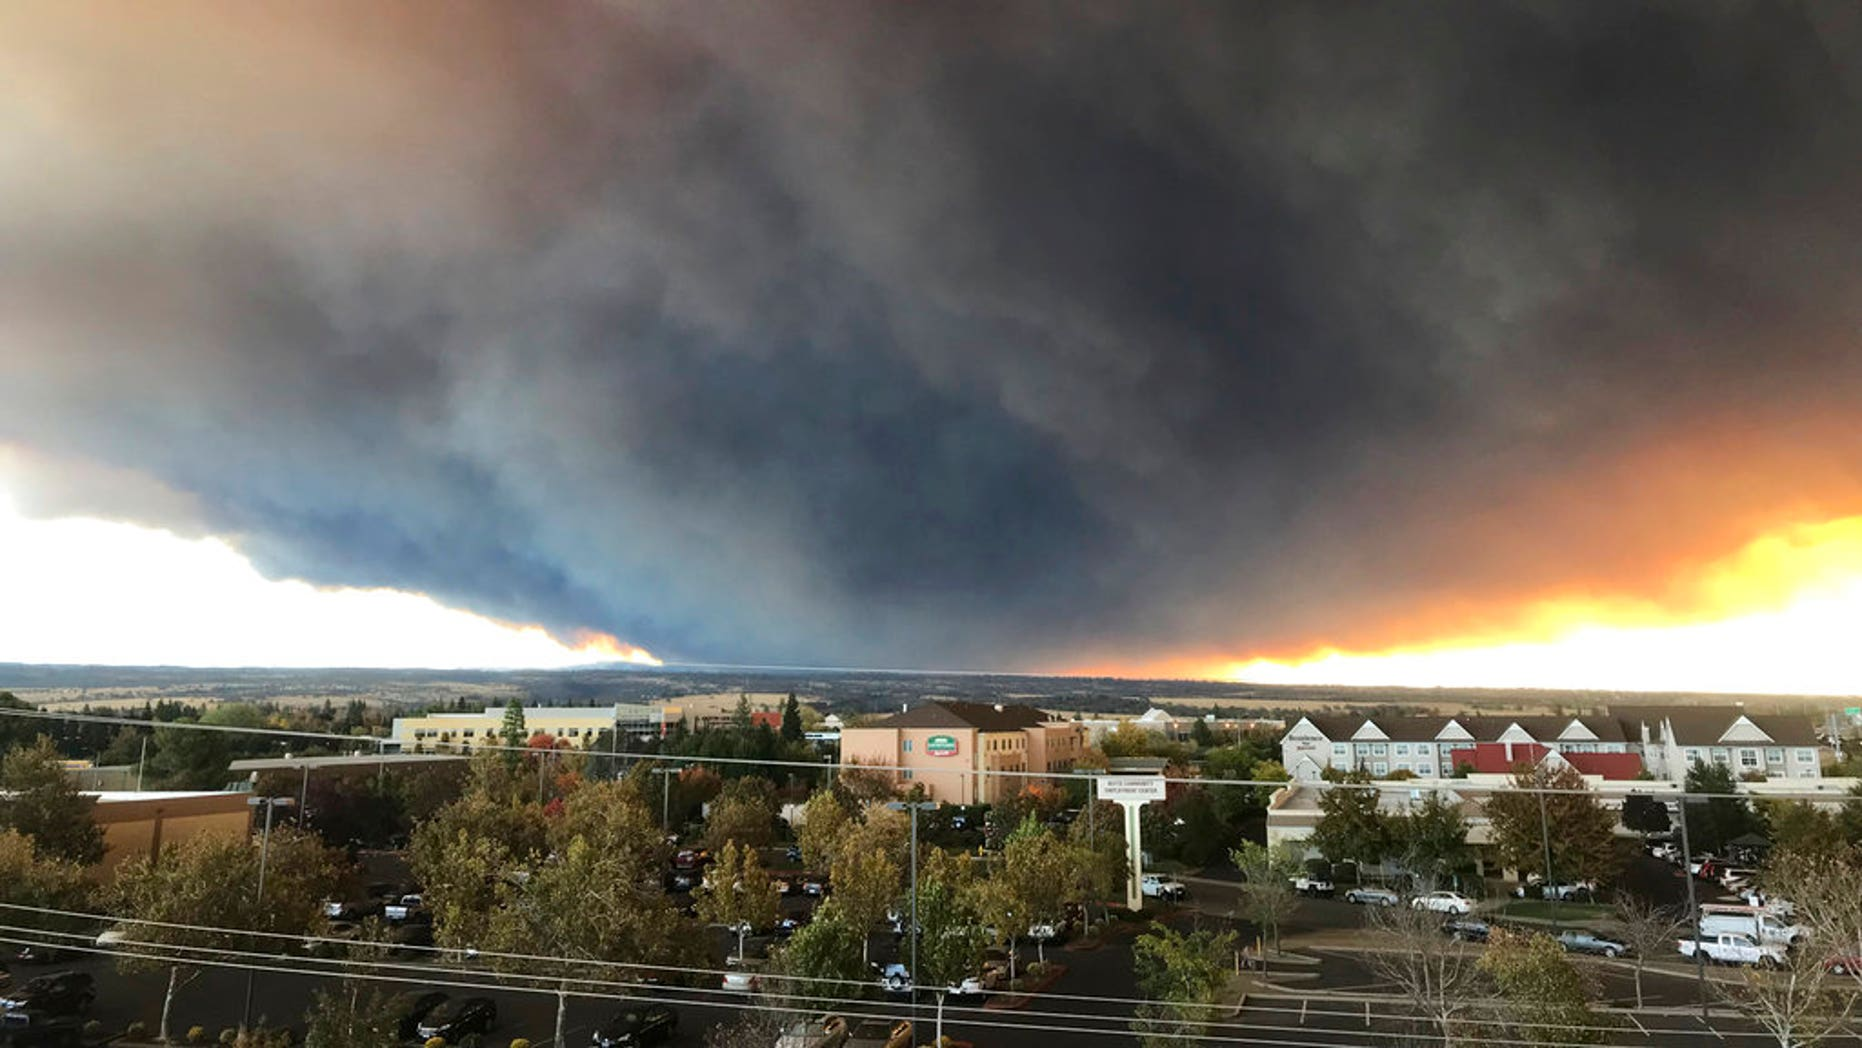 Tens of thousands flee fast-moving Northern California fire